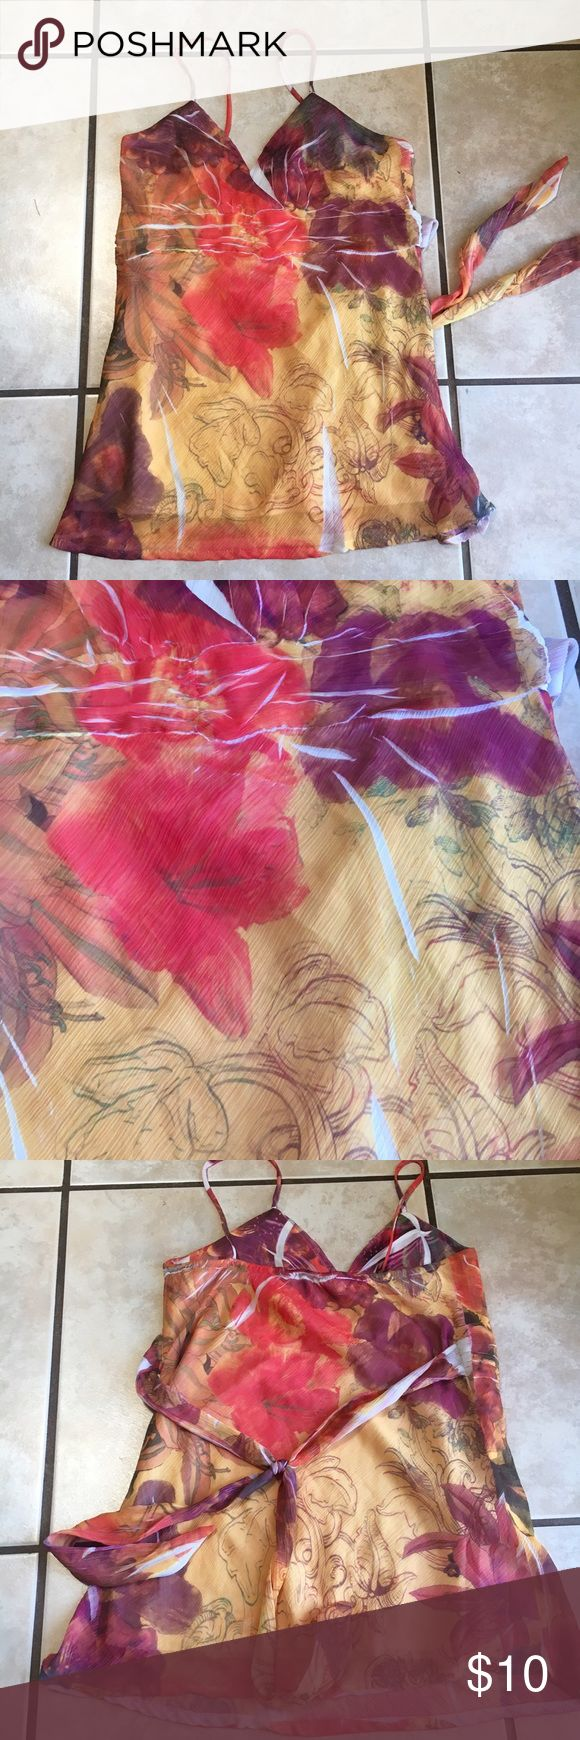 Gorgeous Flattering Boutique Top I SHIP SAME OR NEXT DAY! Beautiful flattering top, bought from Miami boutique. Measures about 26 inches from top of strap to bottom hem, sheer overlay with soft lining, float material, ties in back, gorgeous gold, maroon, coral Floral design Tops Blouses